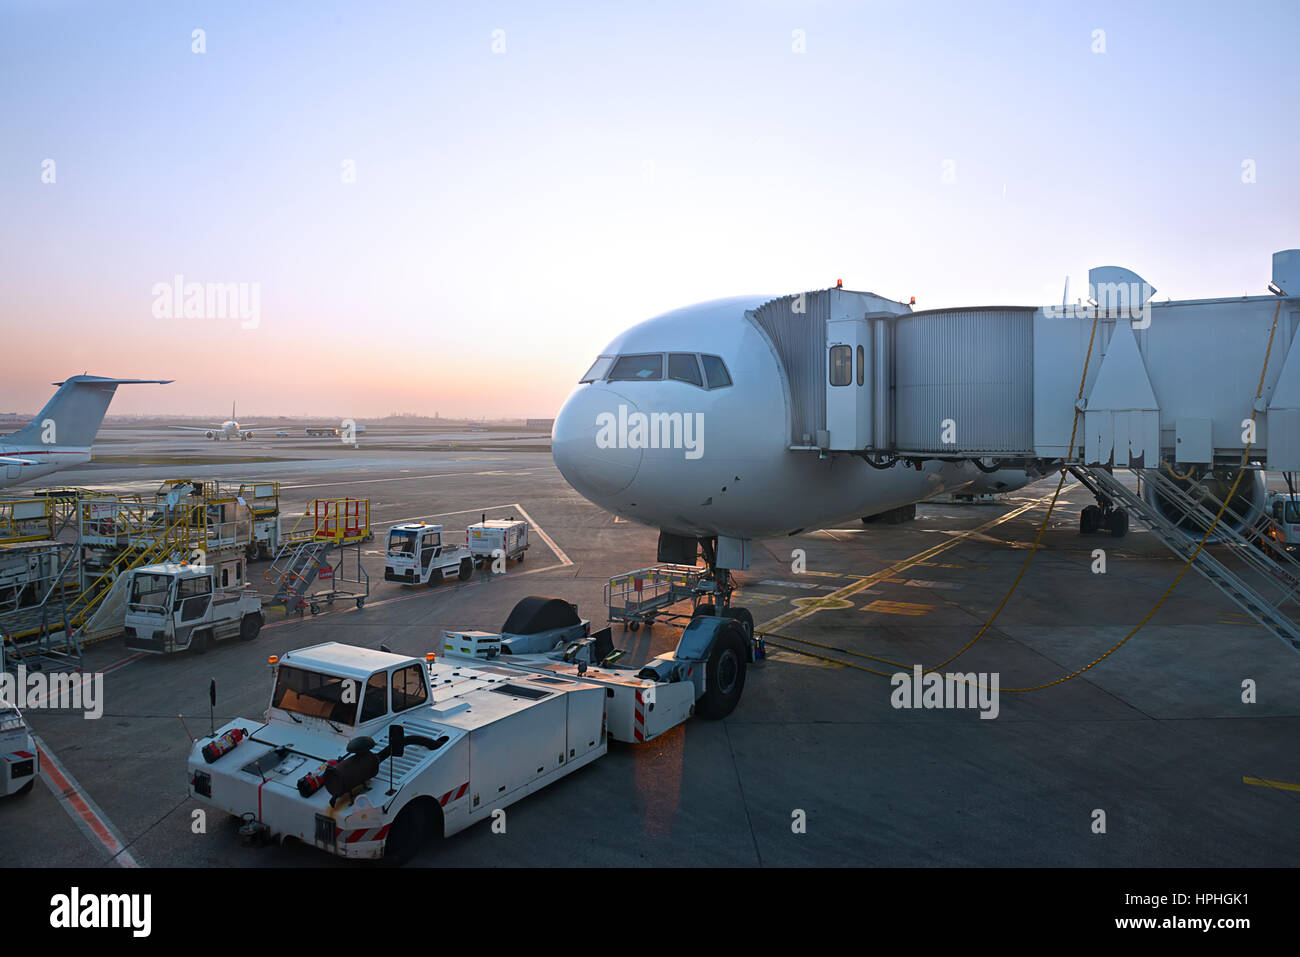 big jet plane preparing for pushback and departure in an airport evening lighting - Stock Image